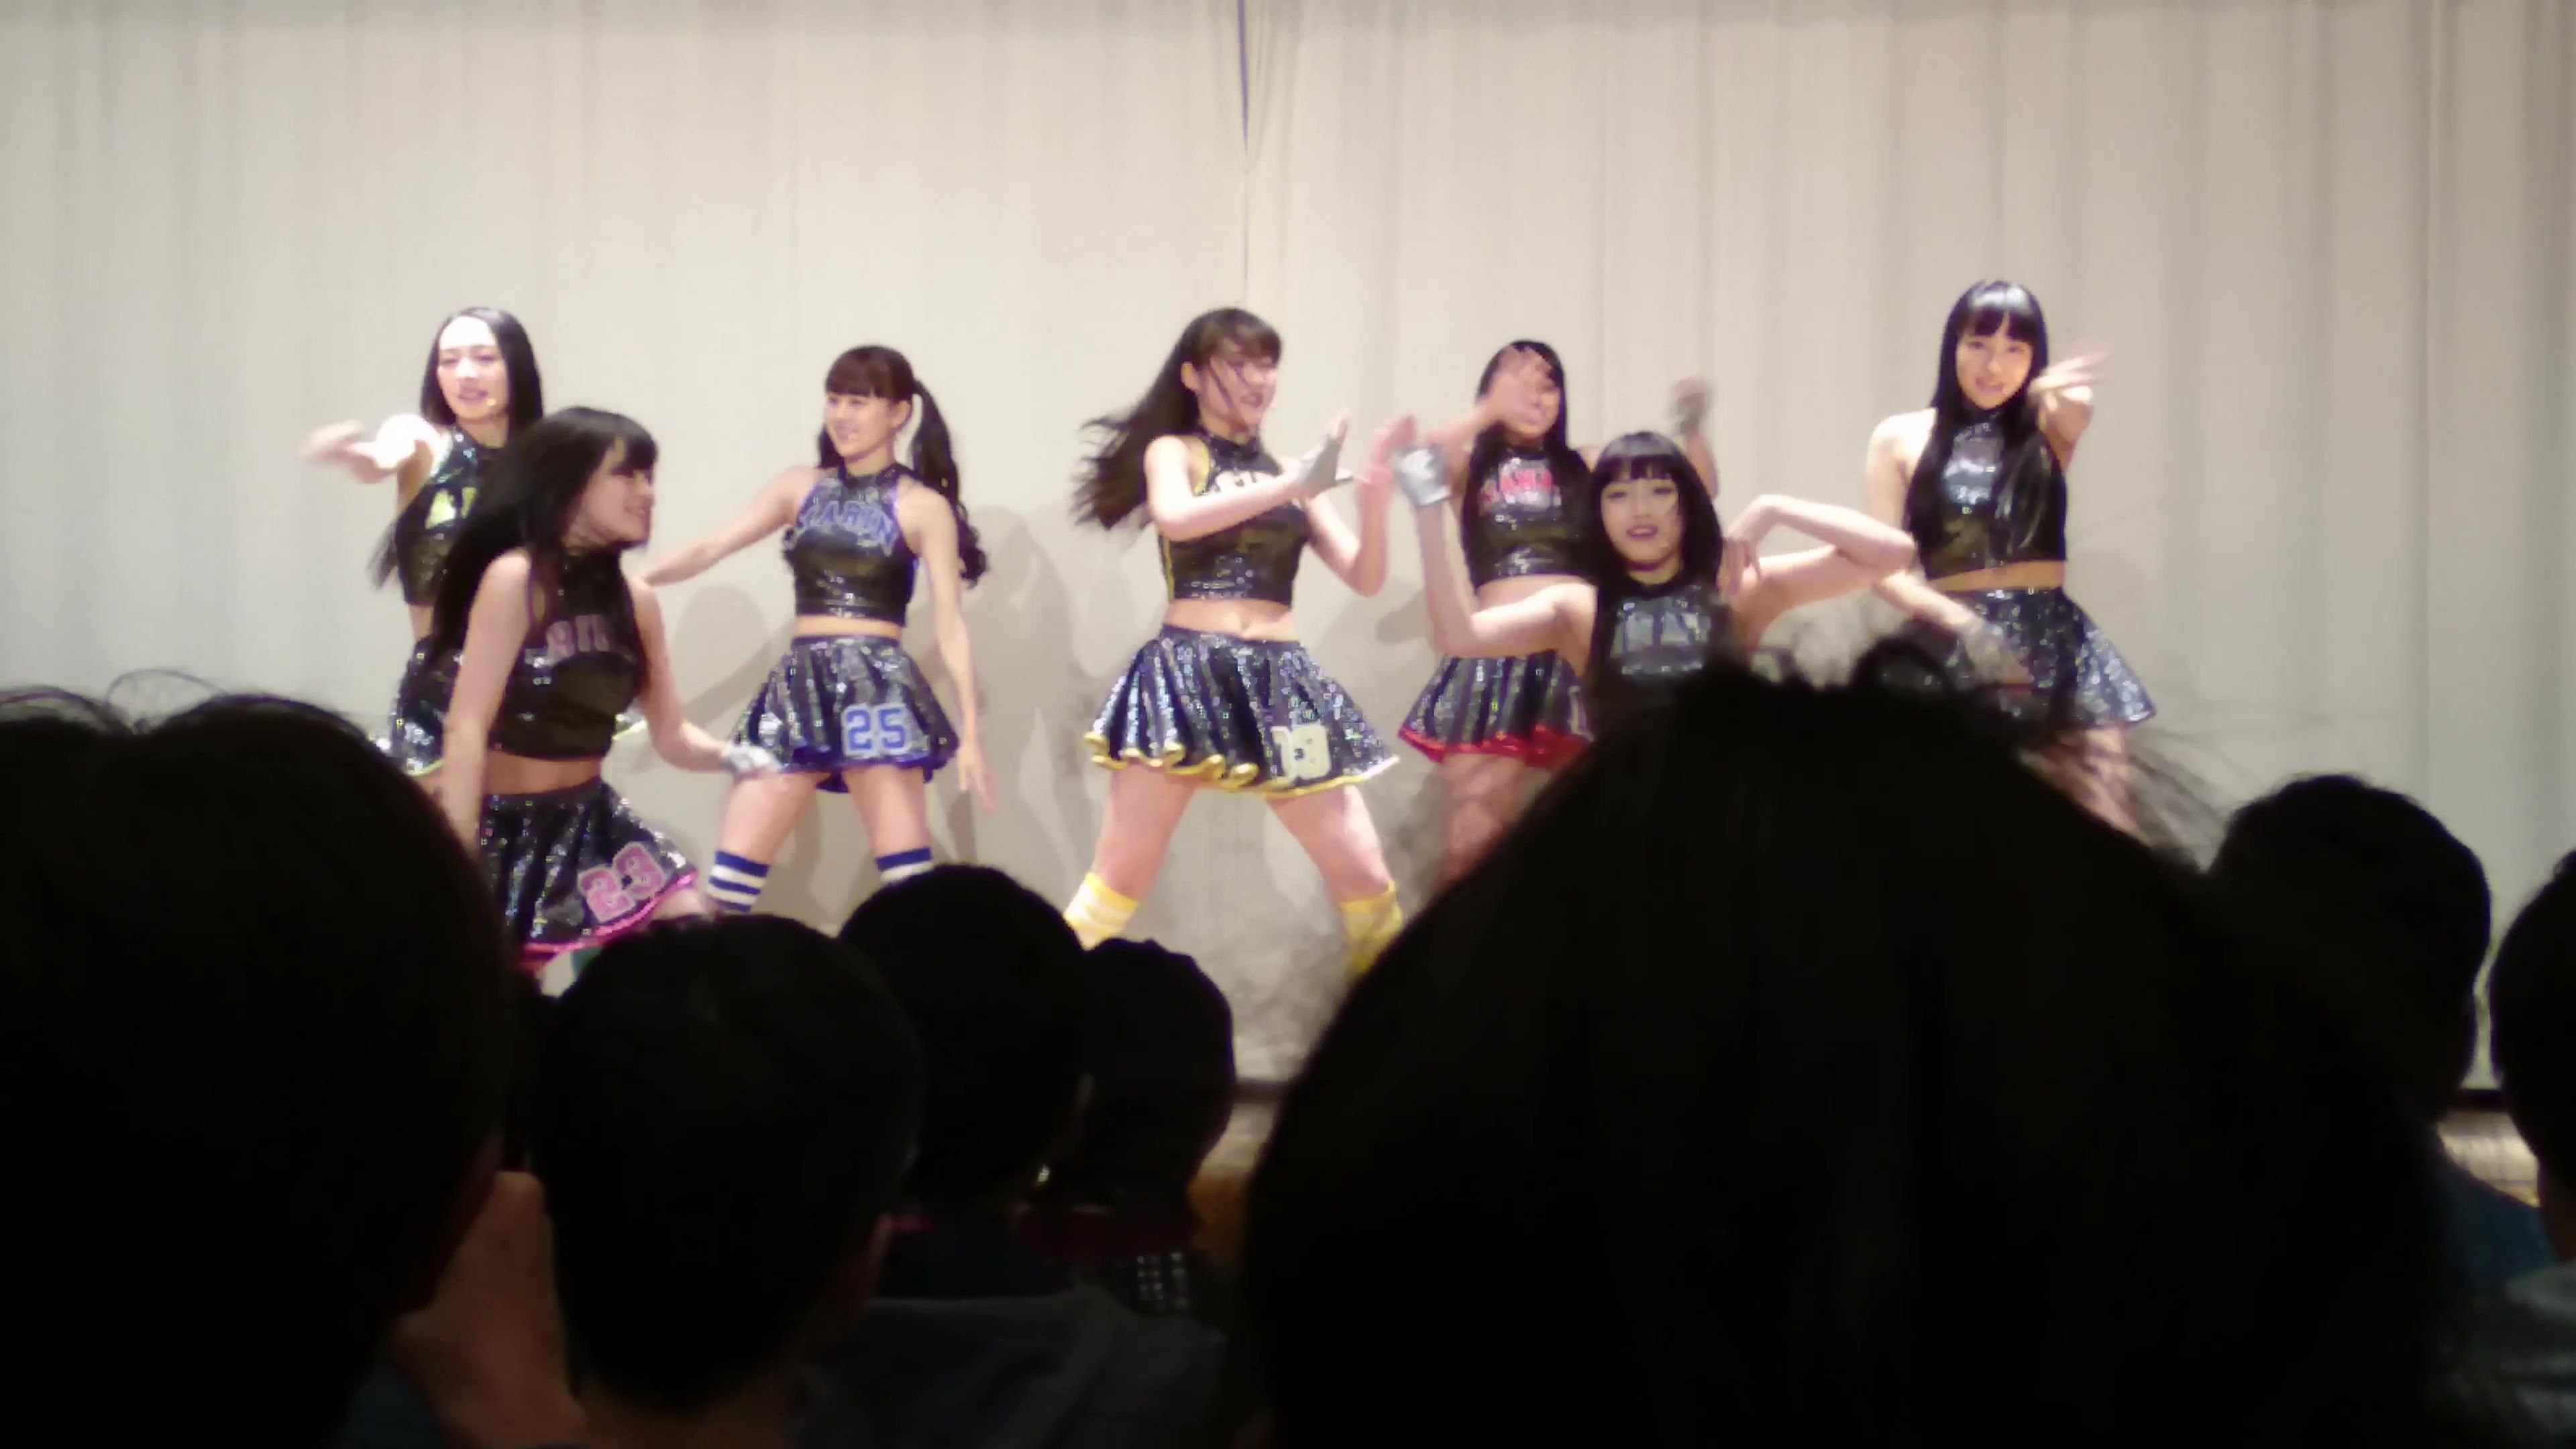 Haraeki Stage A (原駅ステージA), Screenshot, Taya Nanako (田谷菜々子)